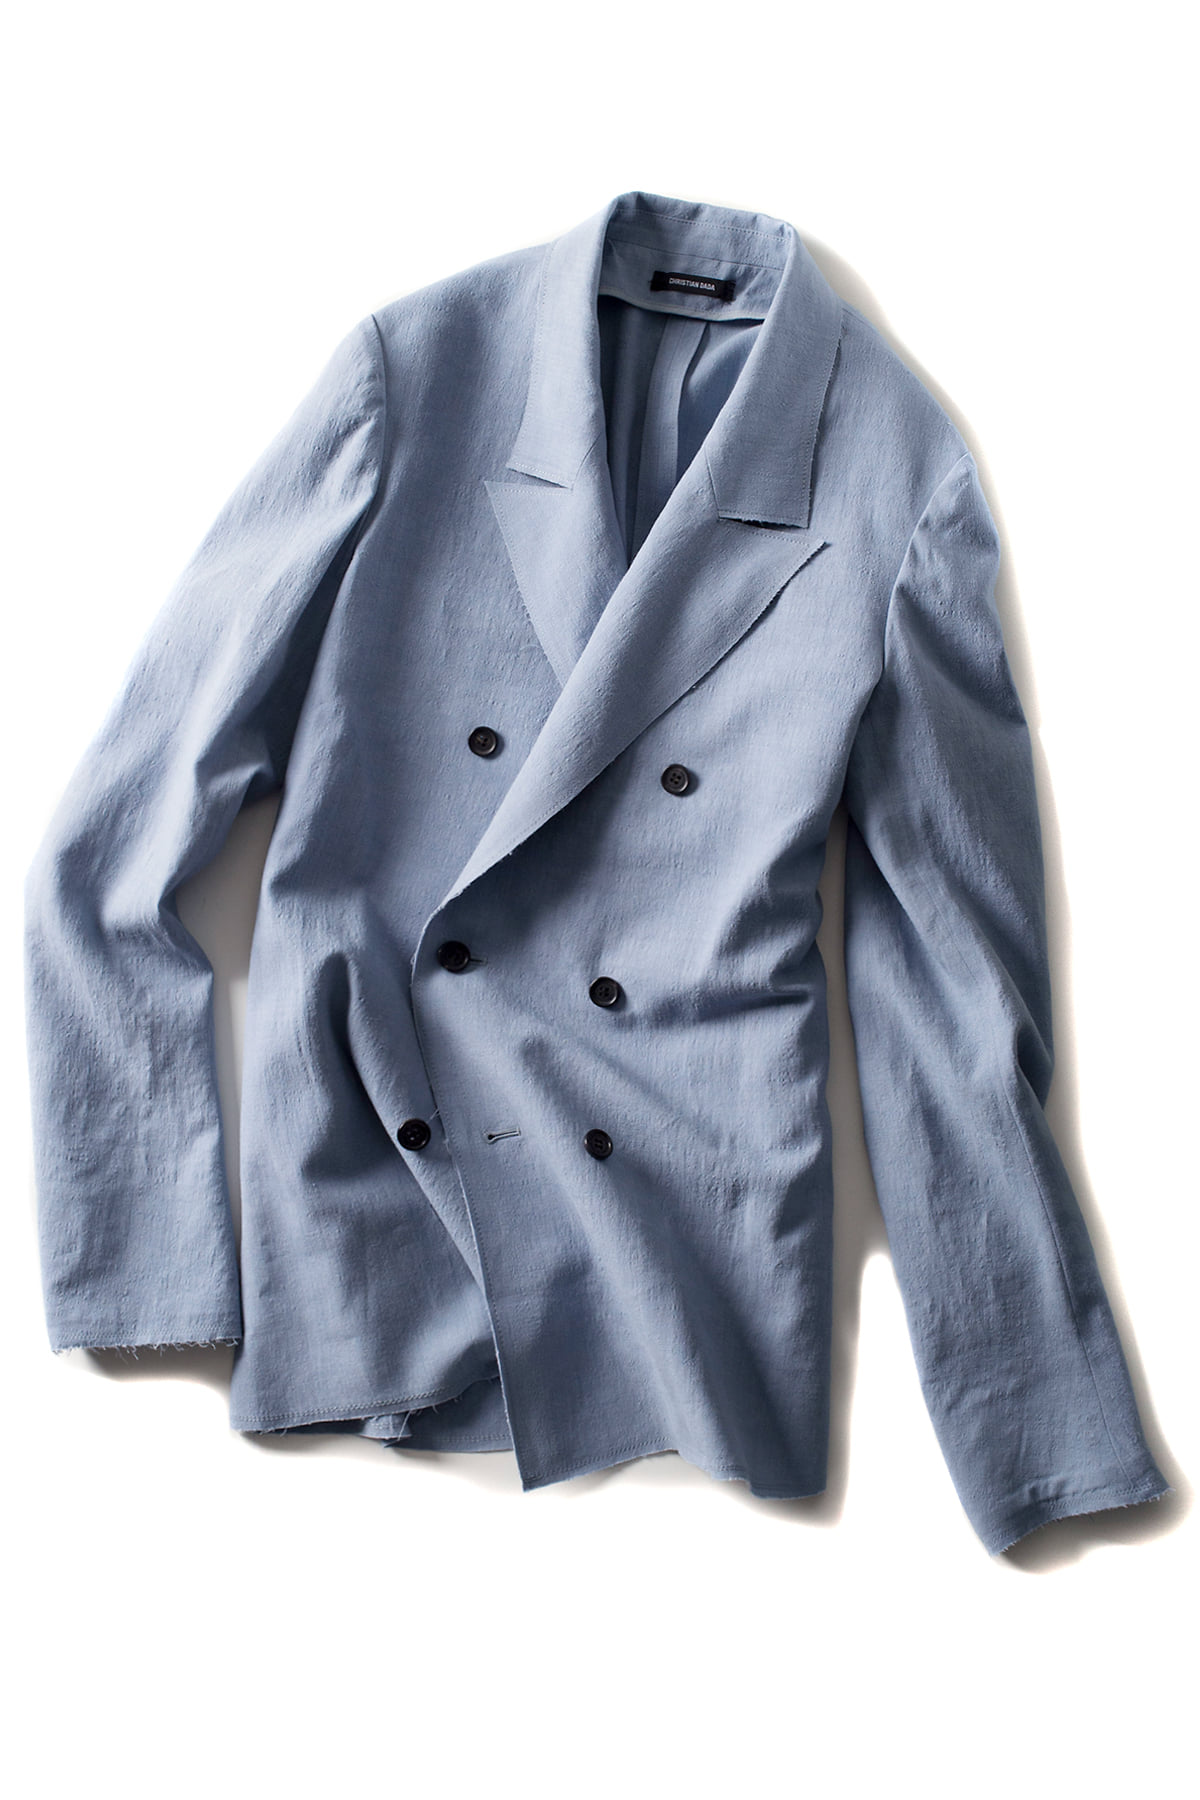 Christian Dada : Alpaca Linen Double Breasted Jacket (Blue)